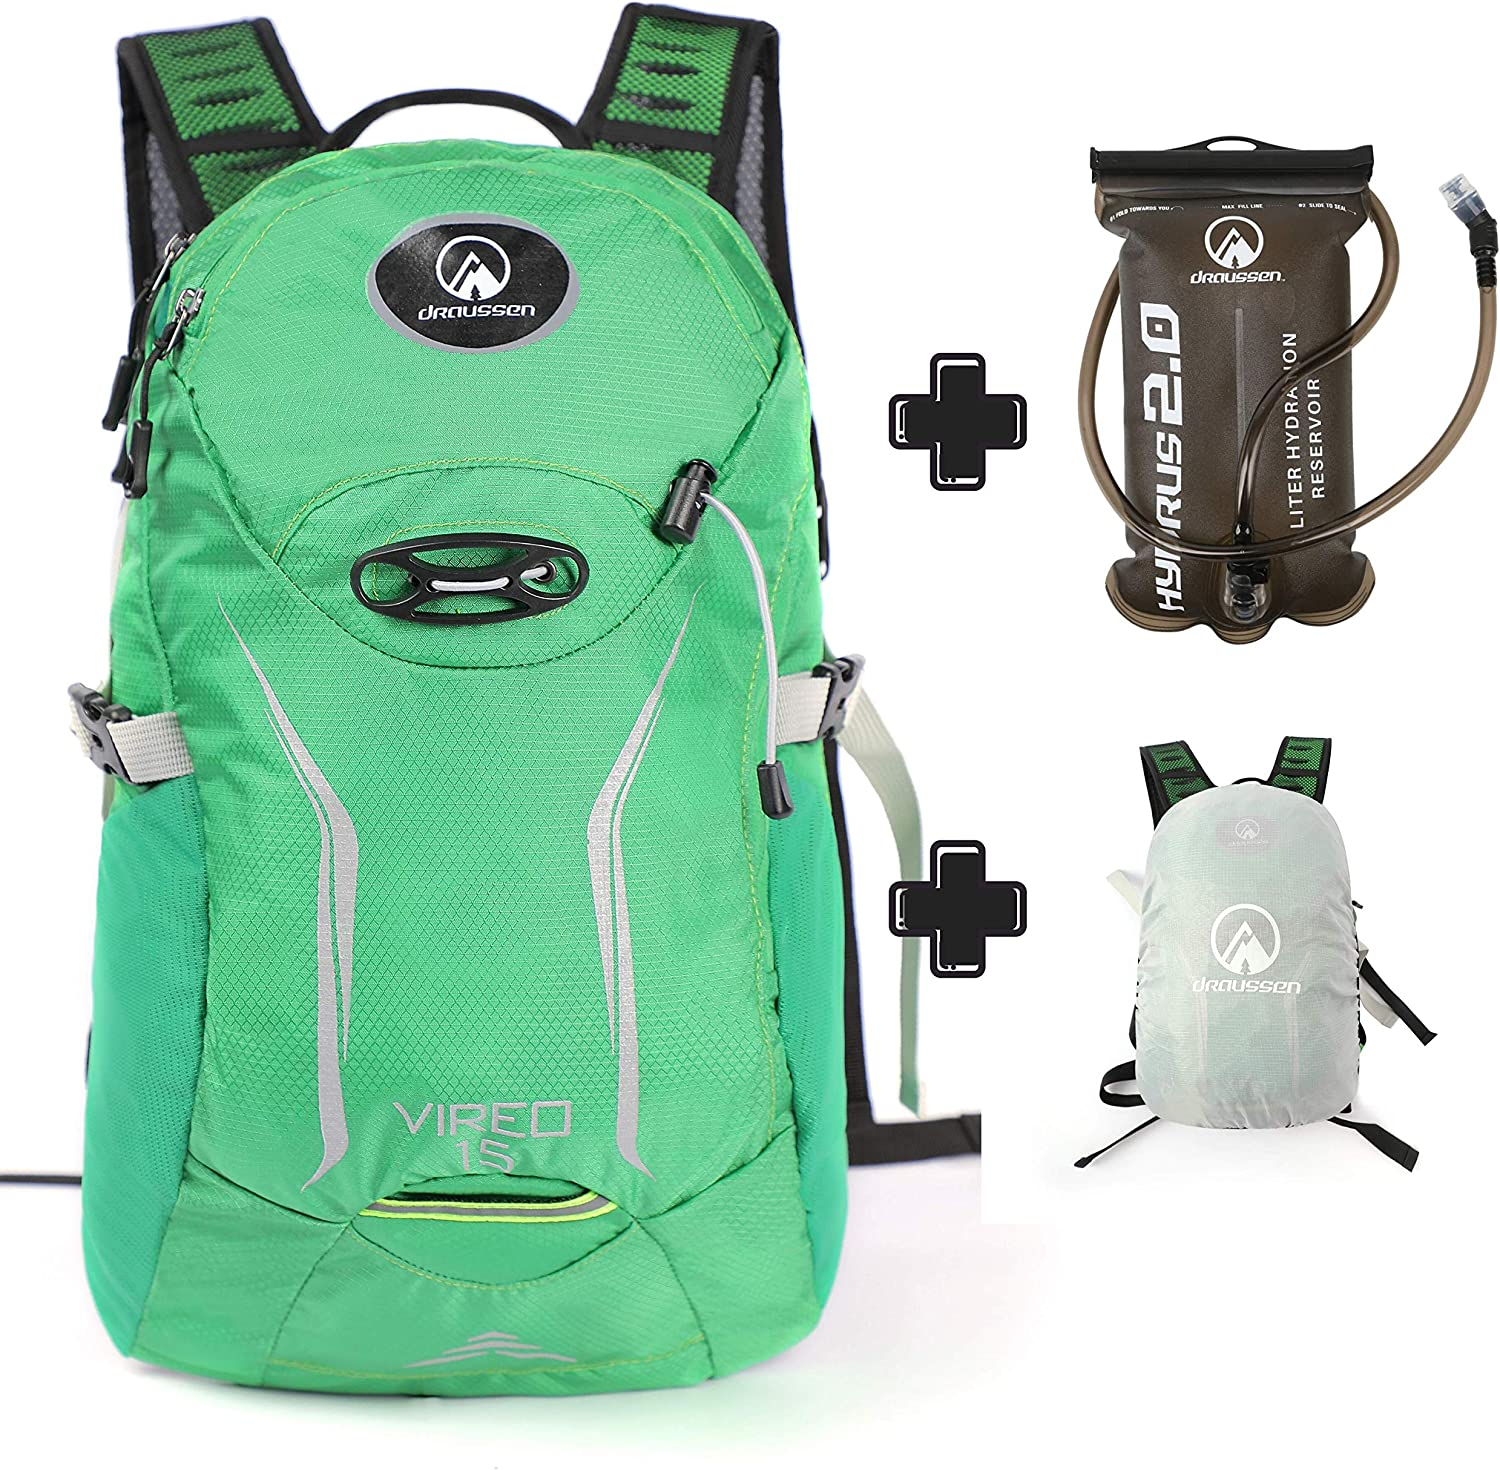 Draussen Vireo 15 15-Liter Day Hydration Pack